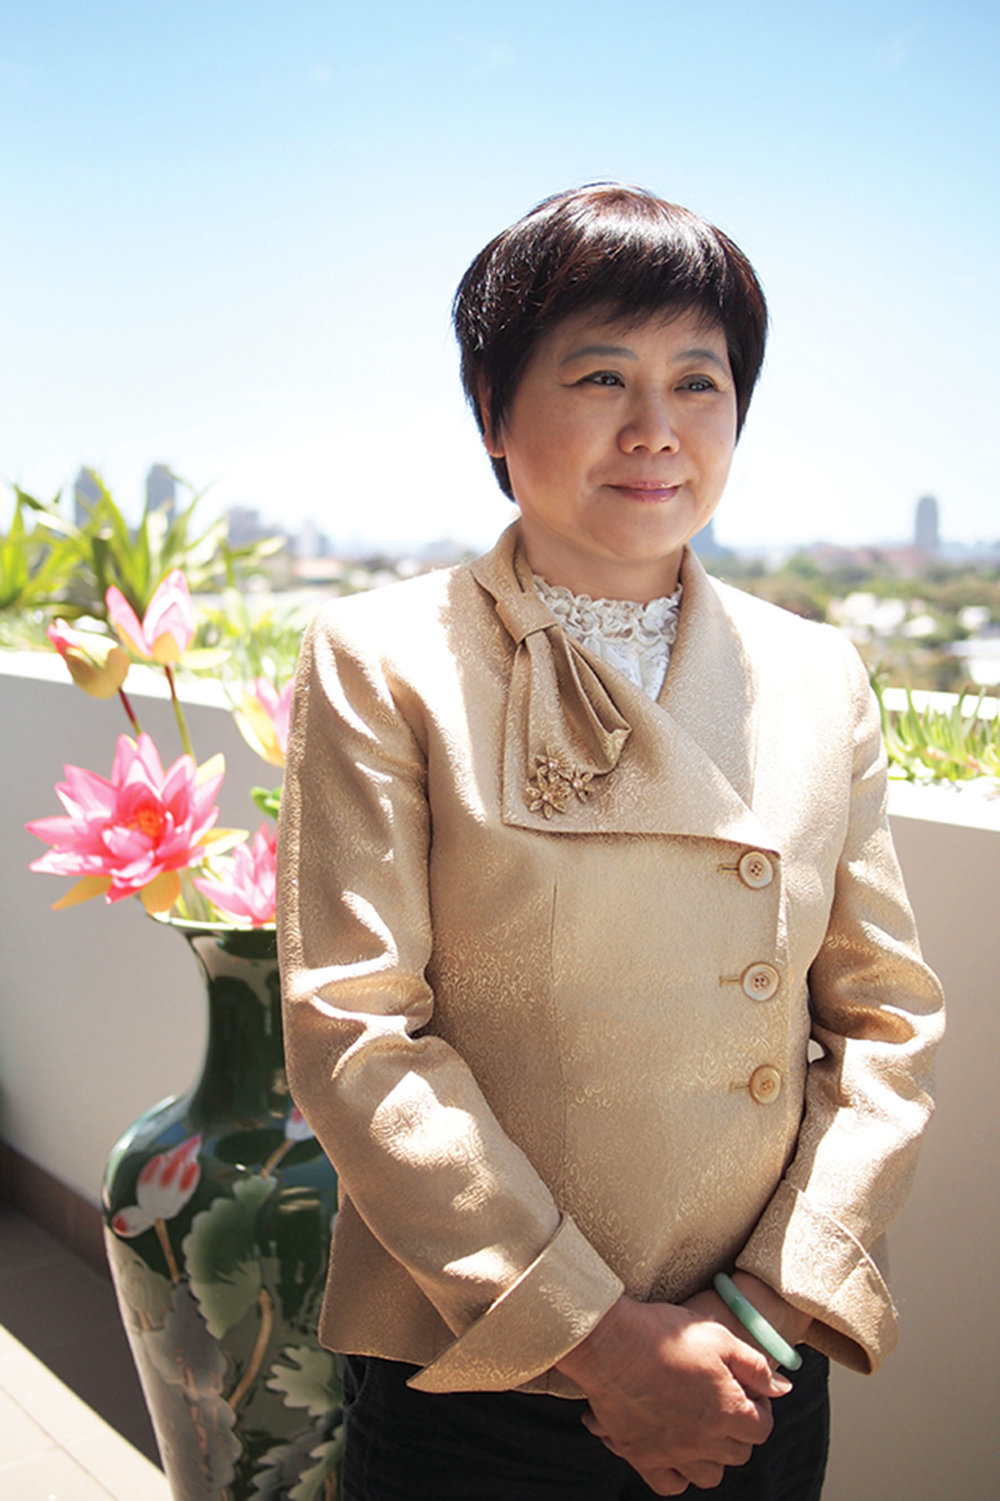 World renowned classical Chinese painter Cuiying Zhang believes that she must cultivate her character in order to improve her art. Photo courtesy of Cuiying Zhang